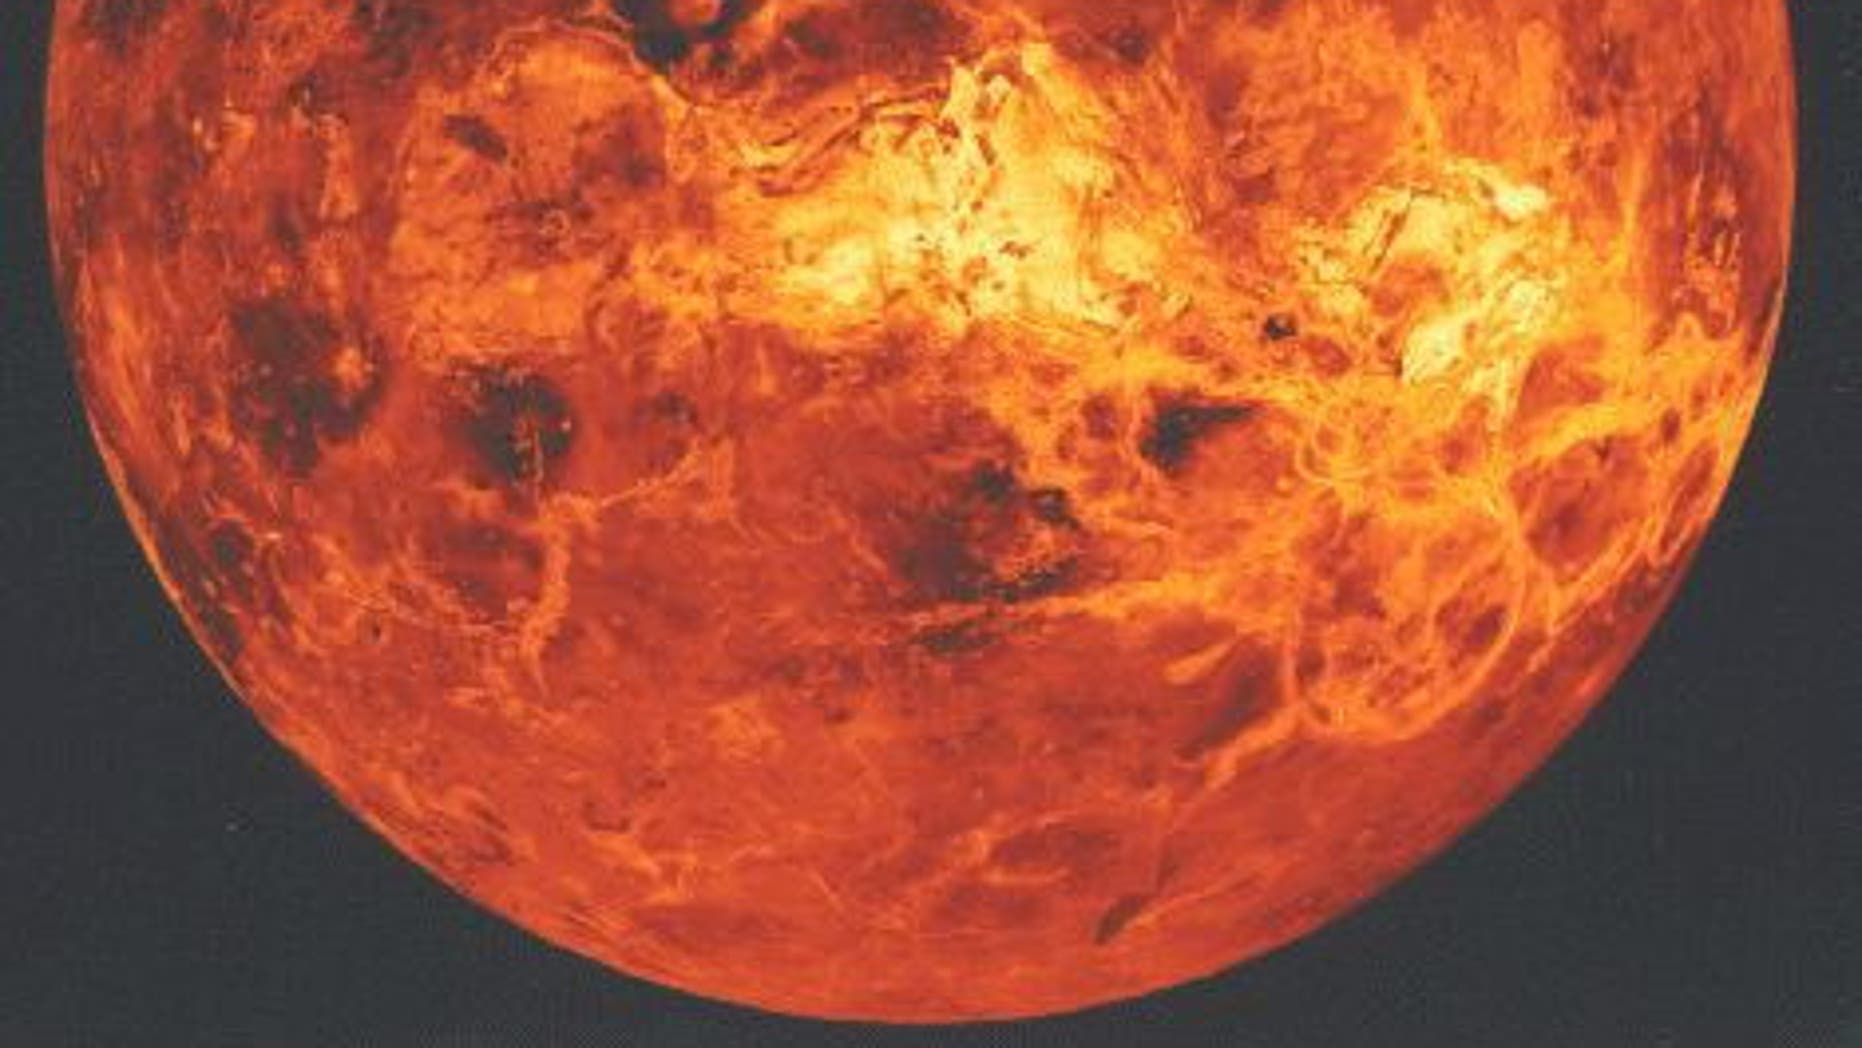 An unstable climate birthed by a tidally-locked planet could create a runaway greenhouse effect that could result in an atmosphere like Venus's.